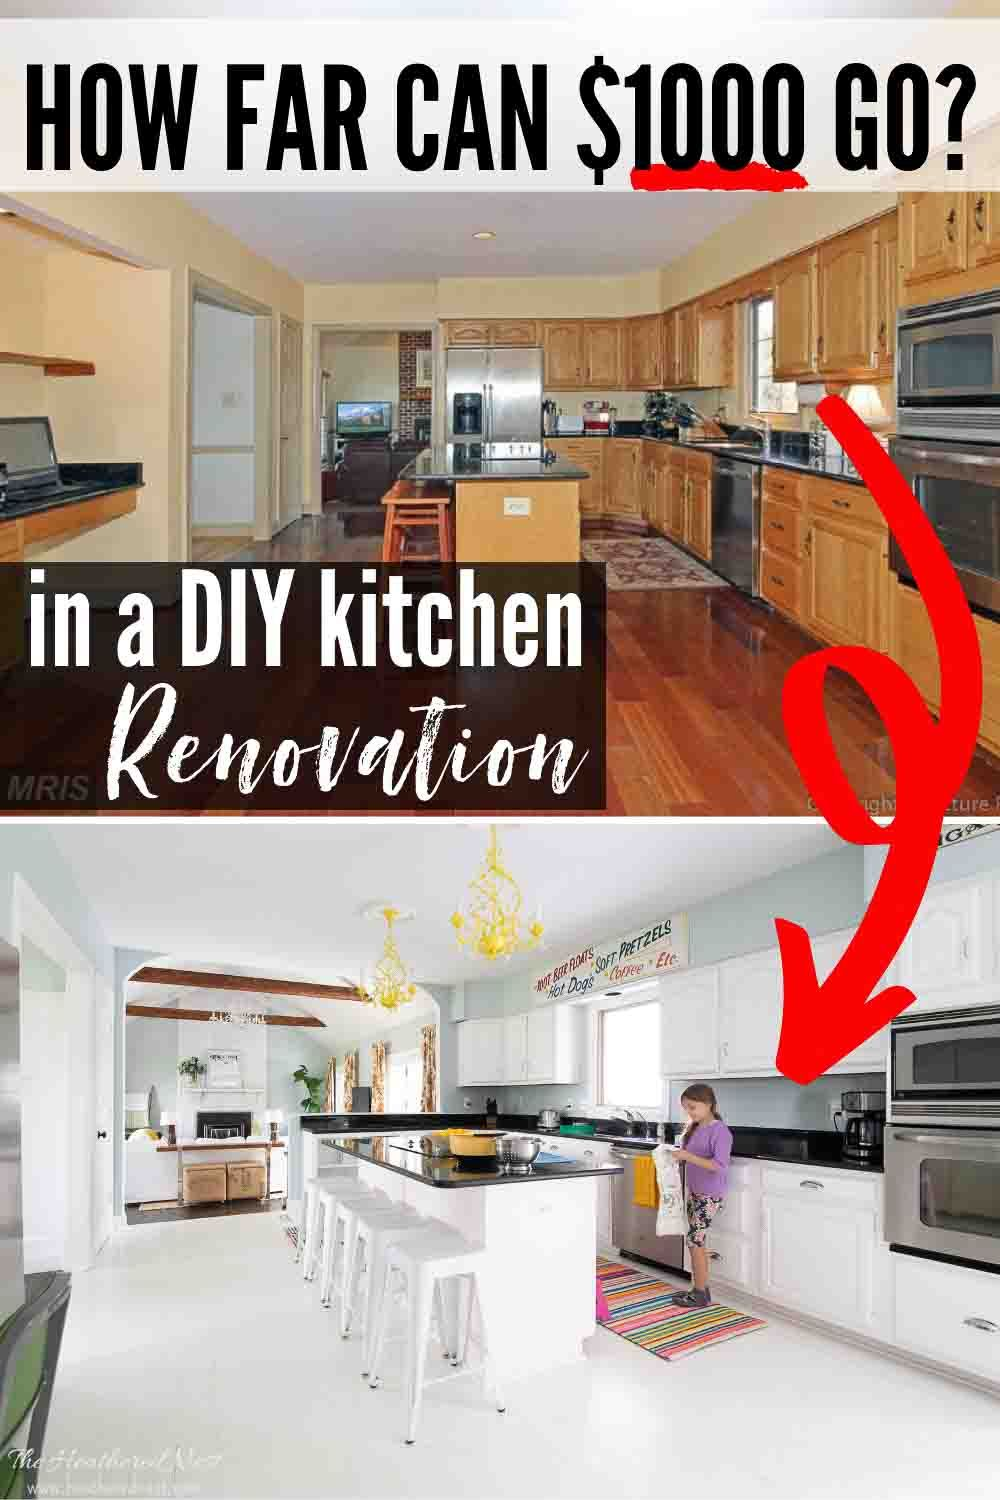 1000 Kitchen Remodel Mission Impossible Diy Kitchen Remodel Diy Remodel Diy Kitchen